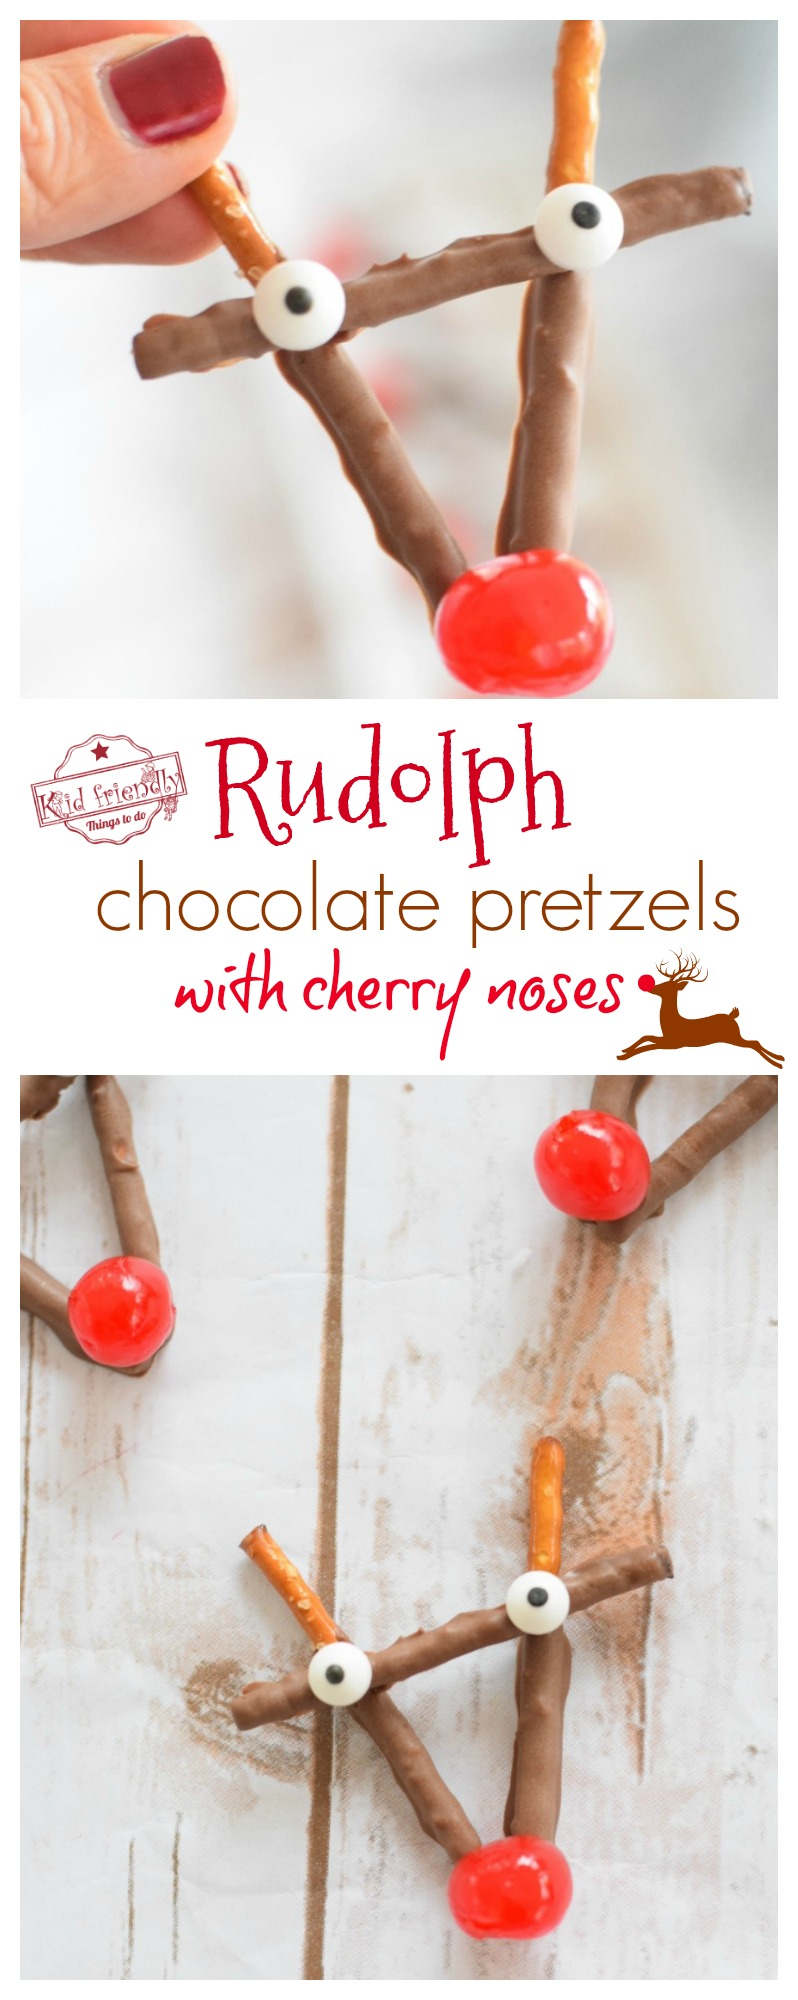 Rudolph Chocolate and Cherry Pretzel Treats for Christmas - easy to make. A fun red cherry nose Rudolph treat for the kids and yummy for everyone! www.kidfriendlythingstodo.com